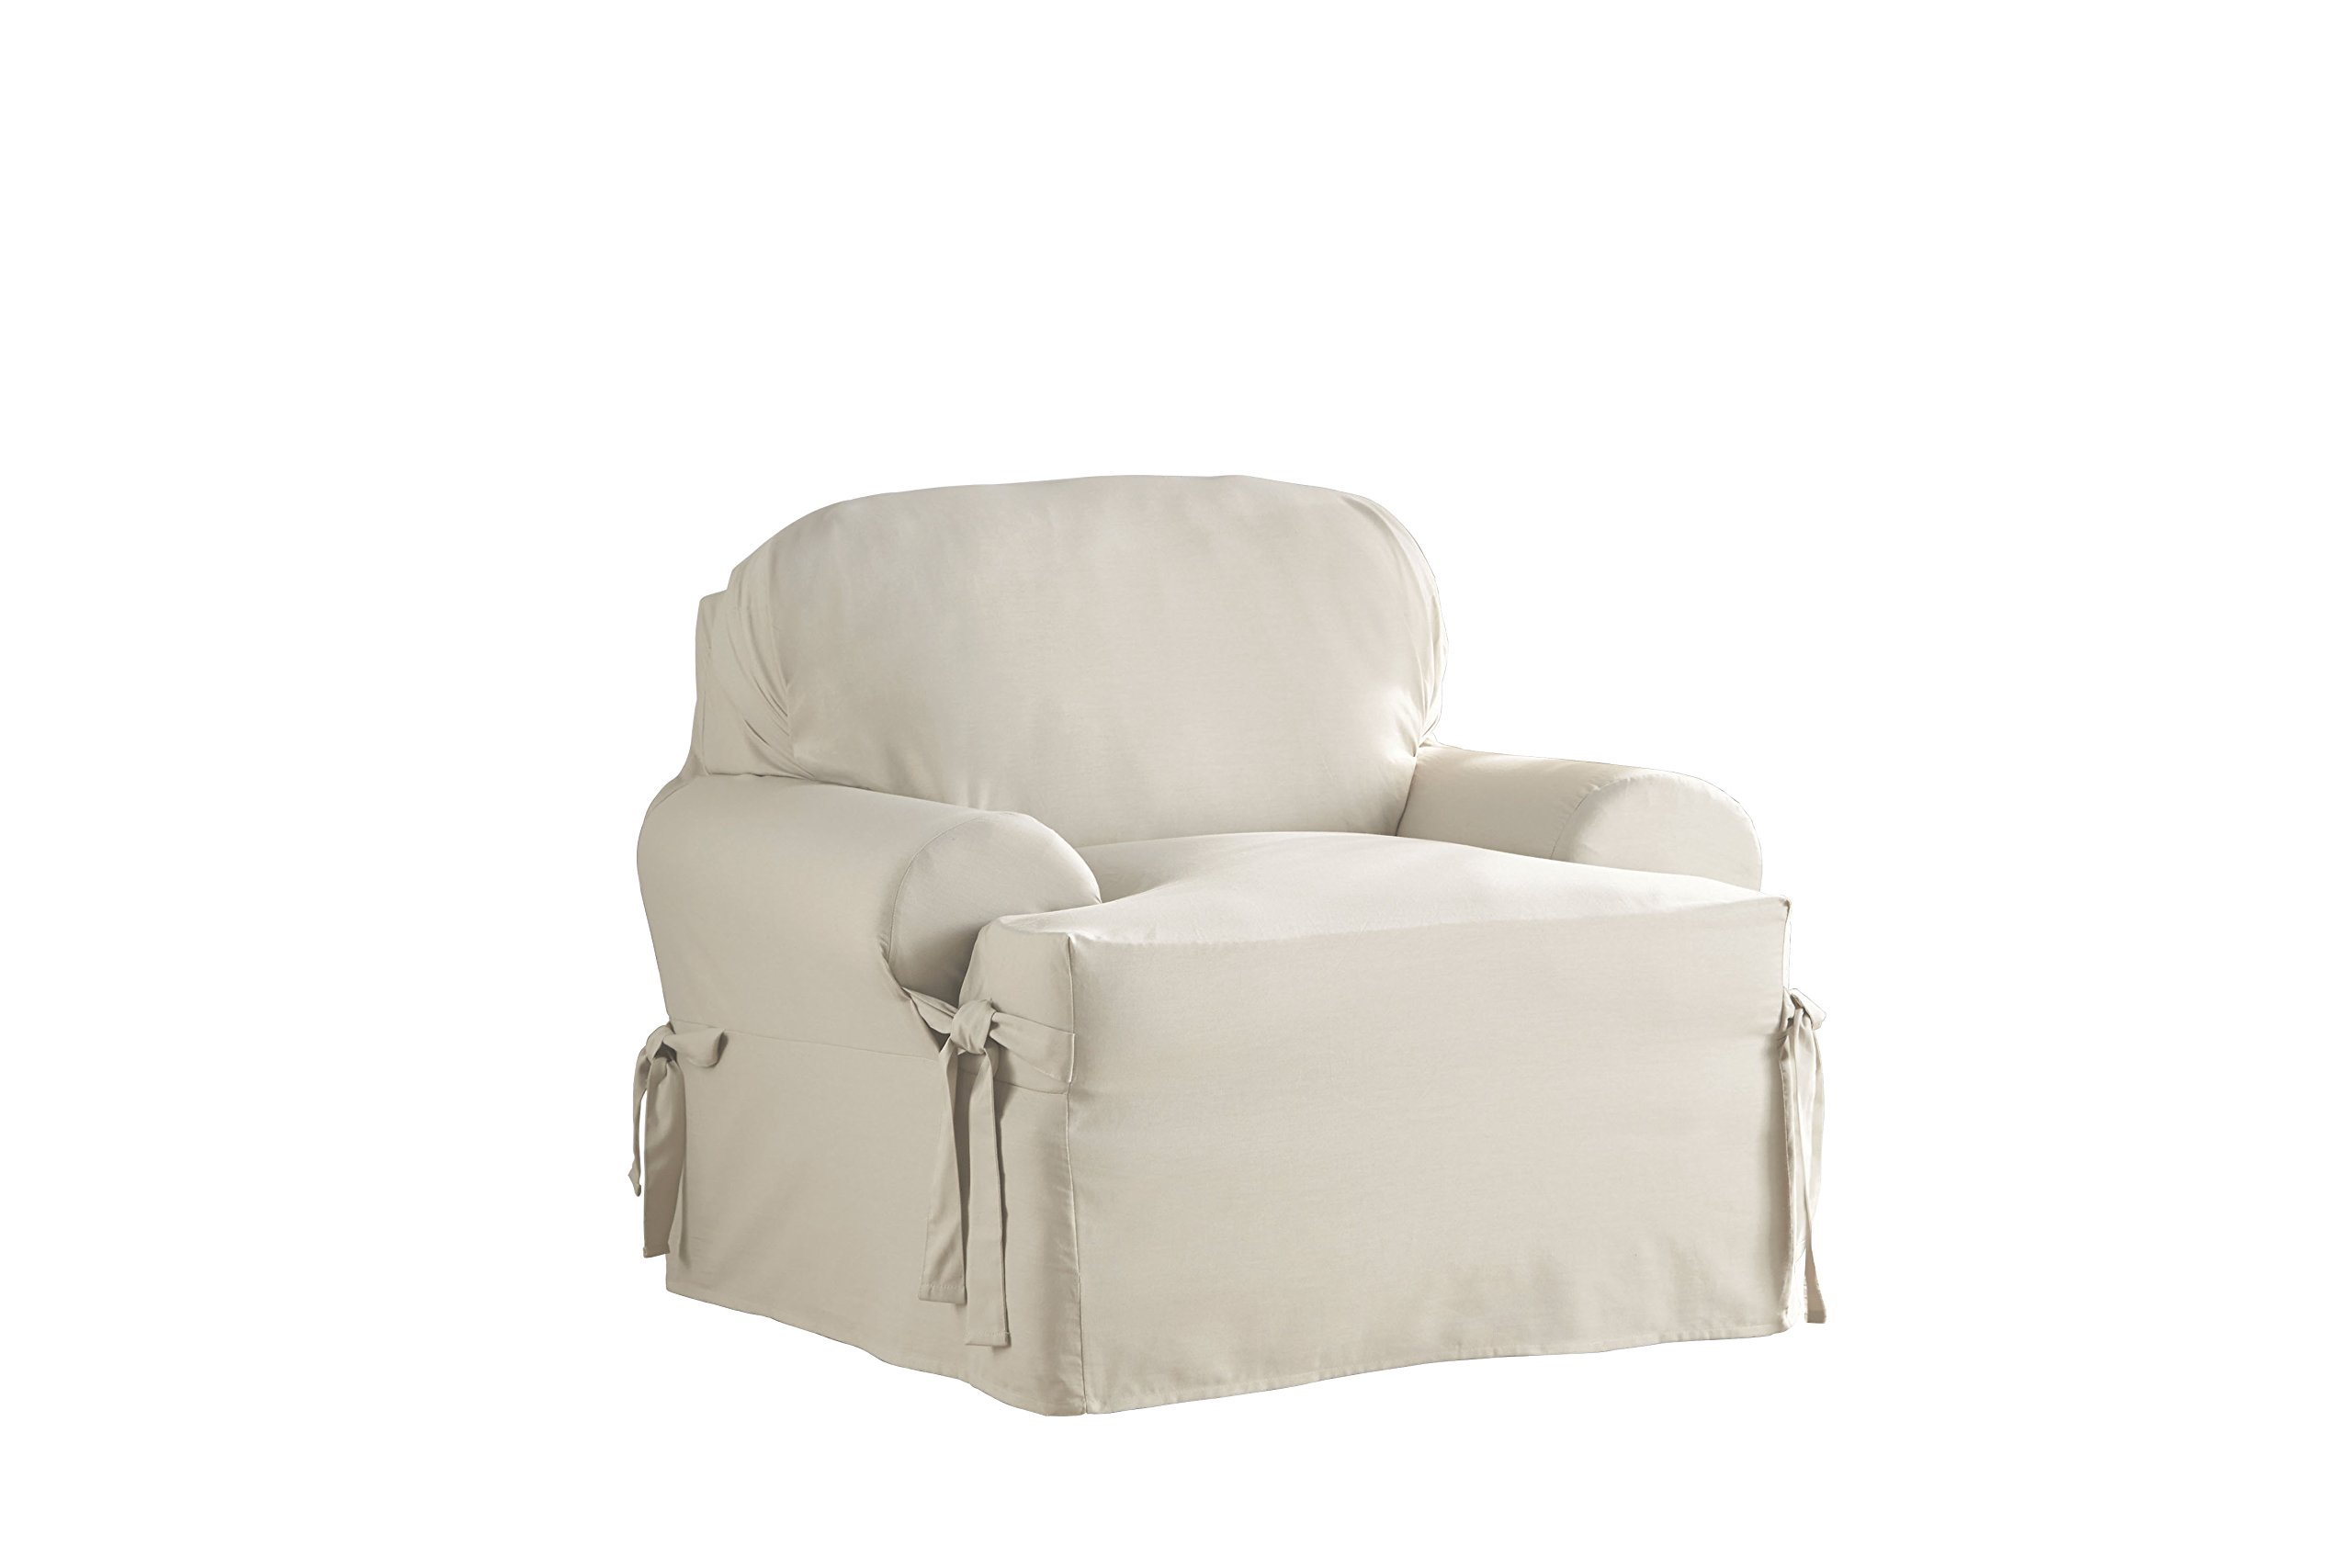 Serta Relaxed Fit Duck Slipcover T Cushion Chair and Ottoman Set, Parchment, 2 Piece